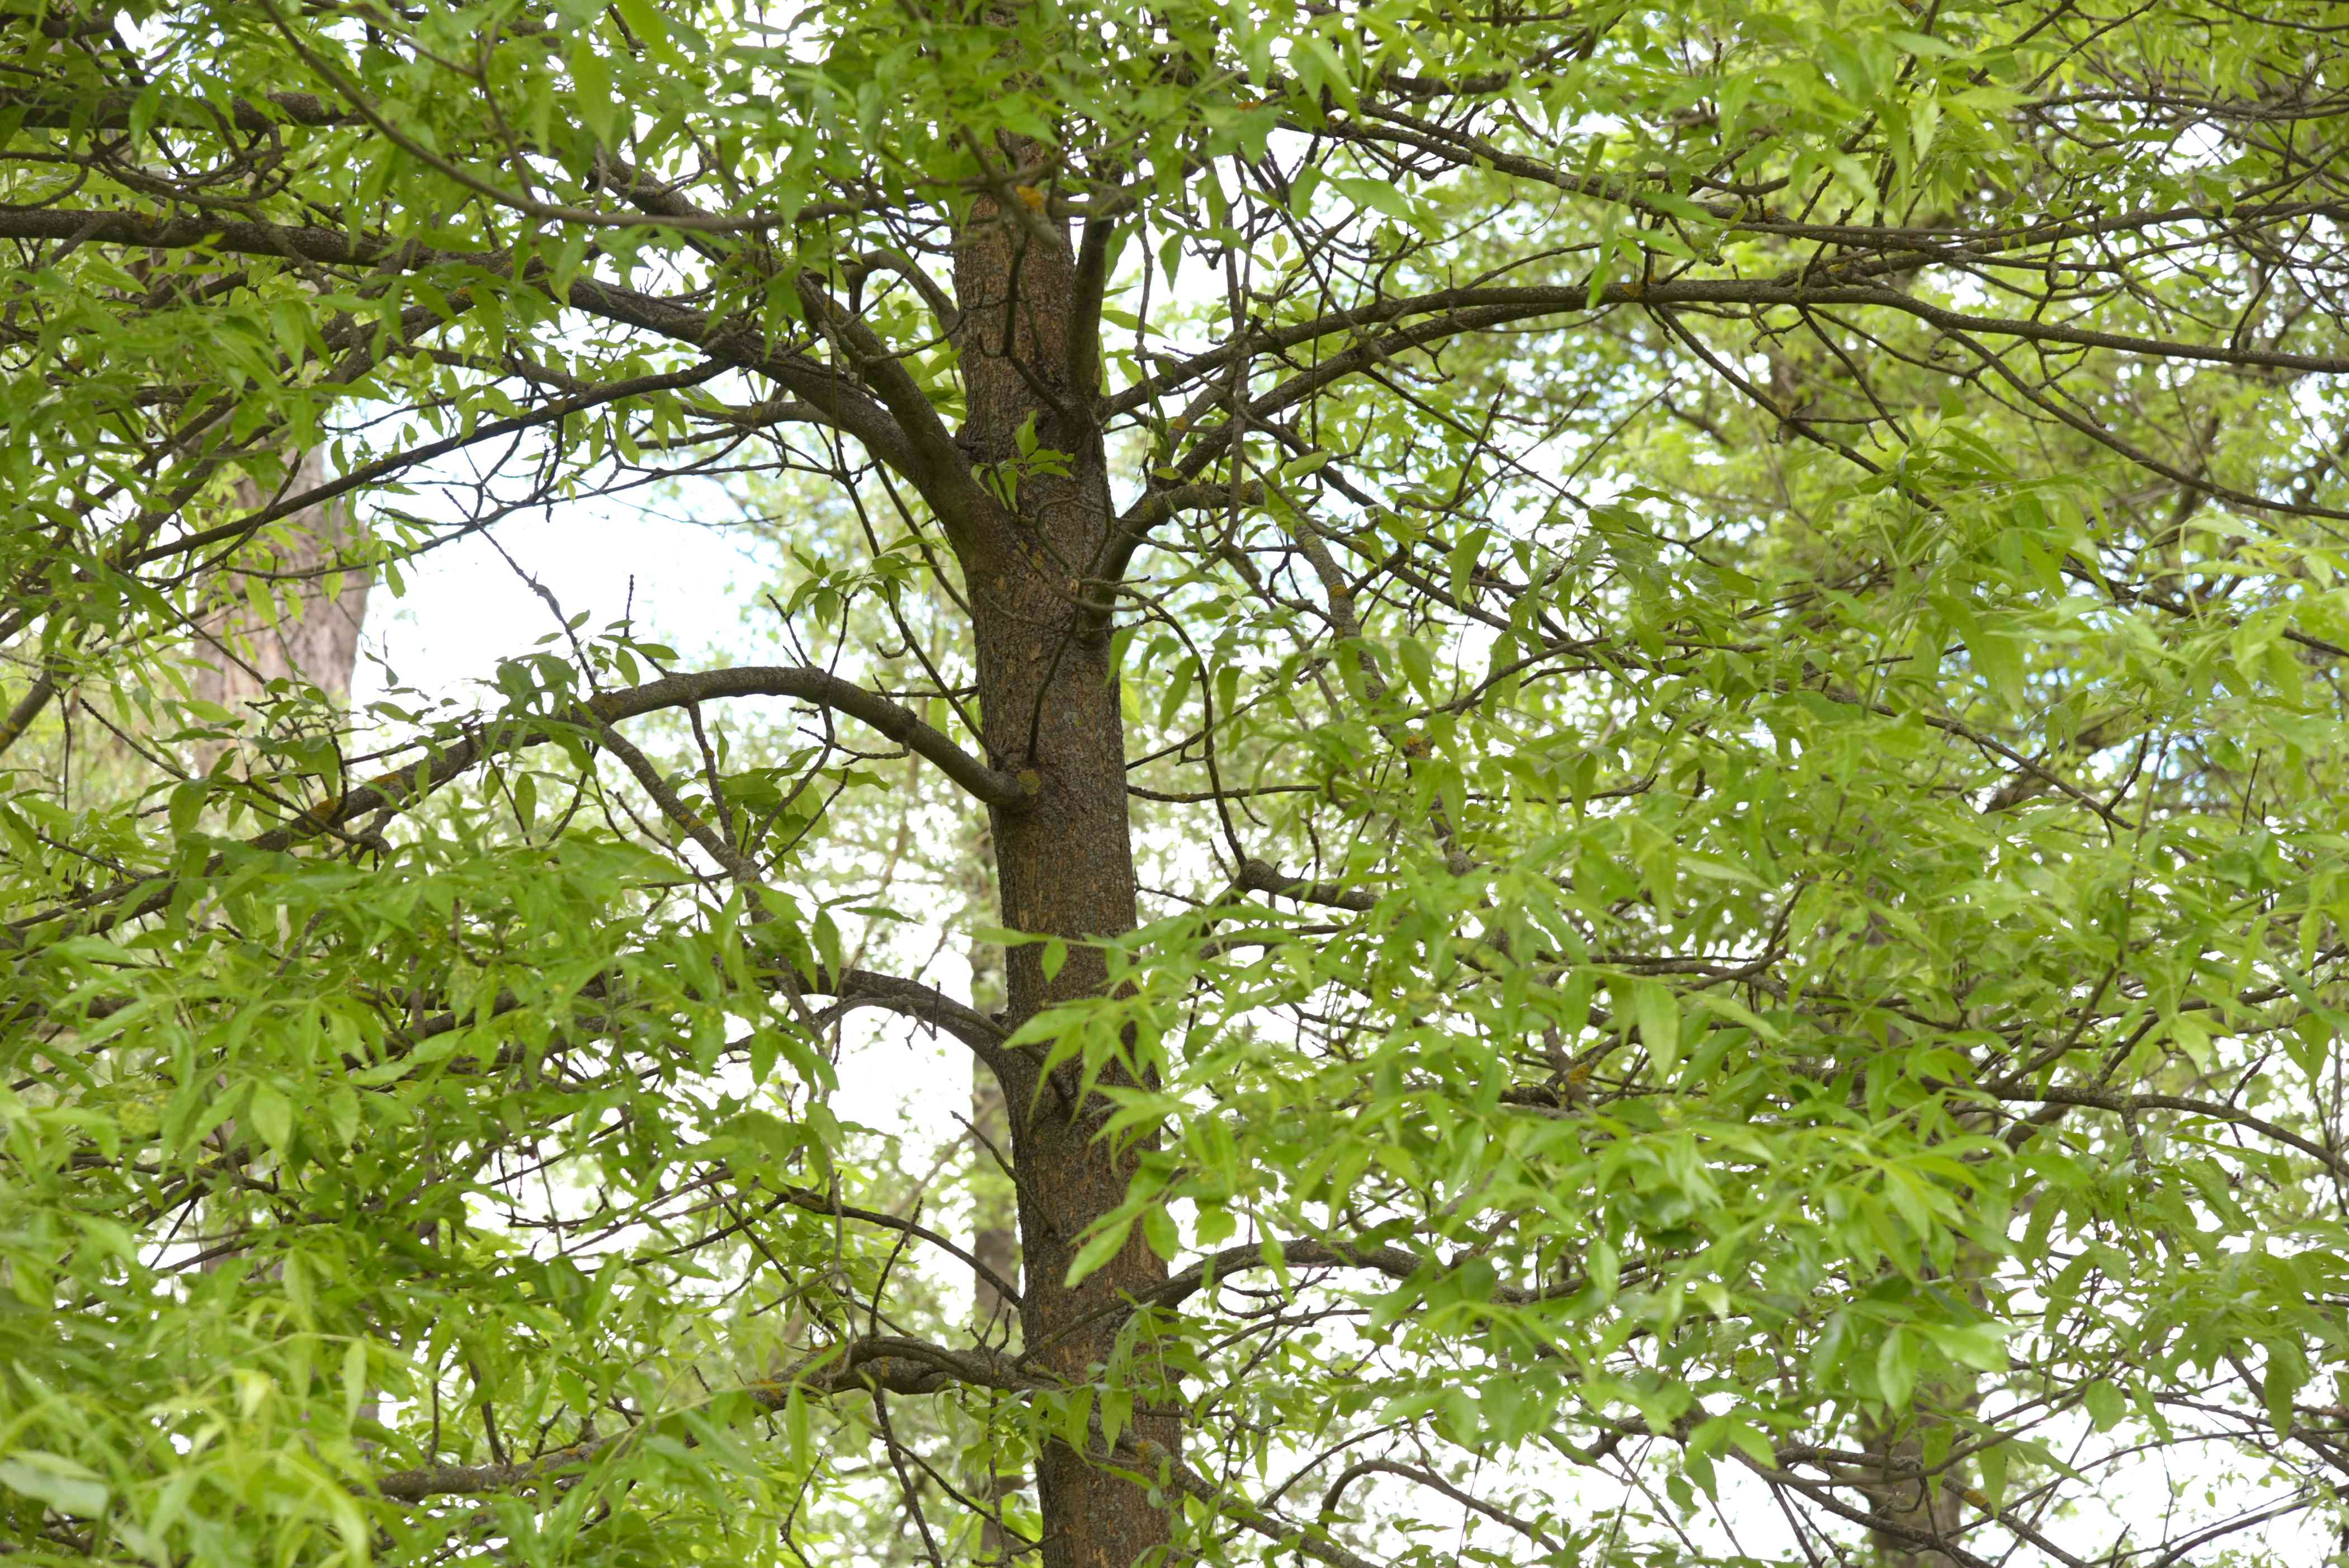 Green ash tree trunk with large green leaves on extending branches